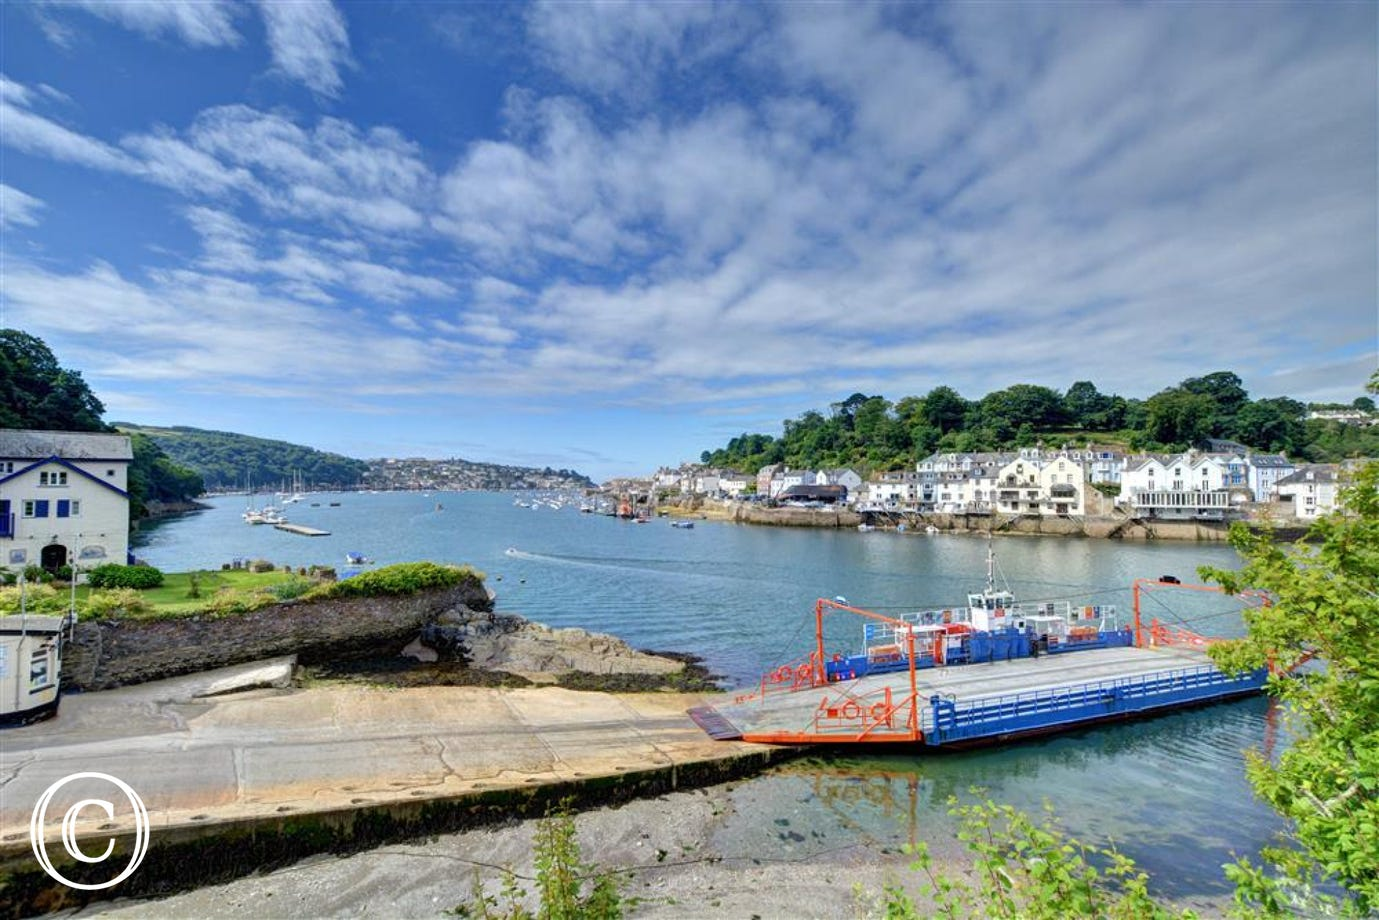 Only a 3 minute drive to the Fowey car ferry